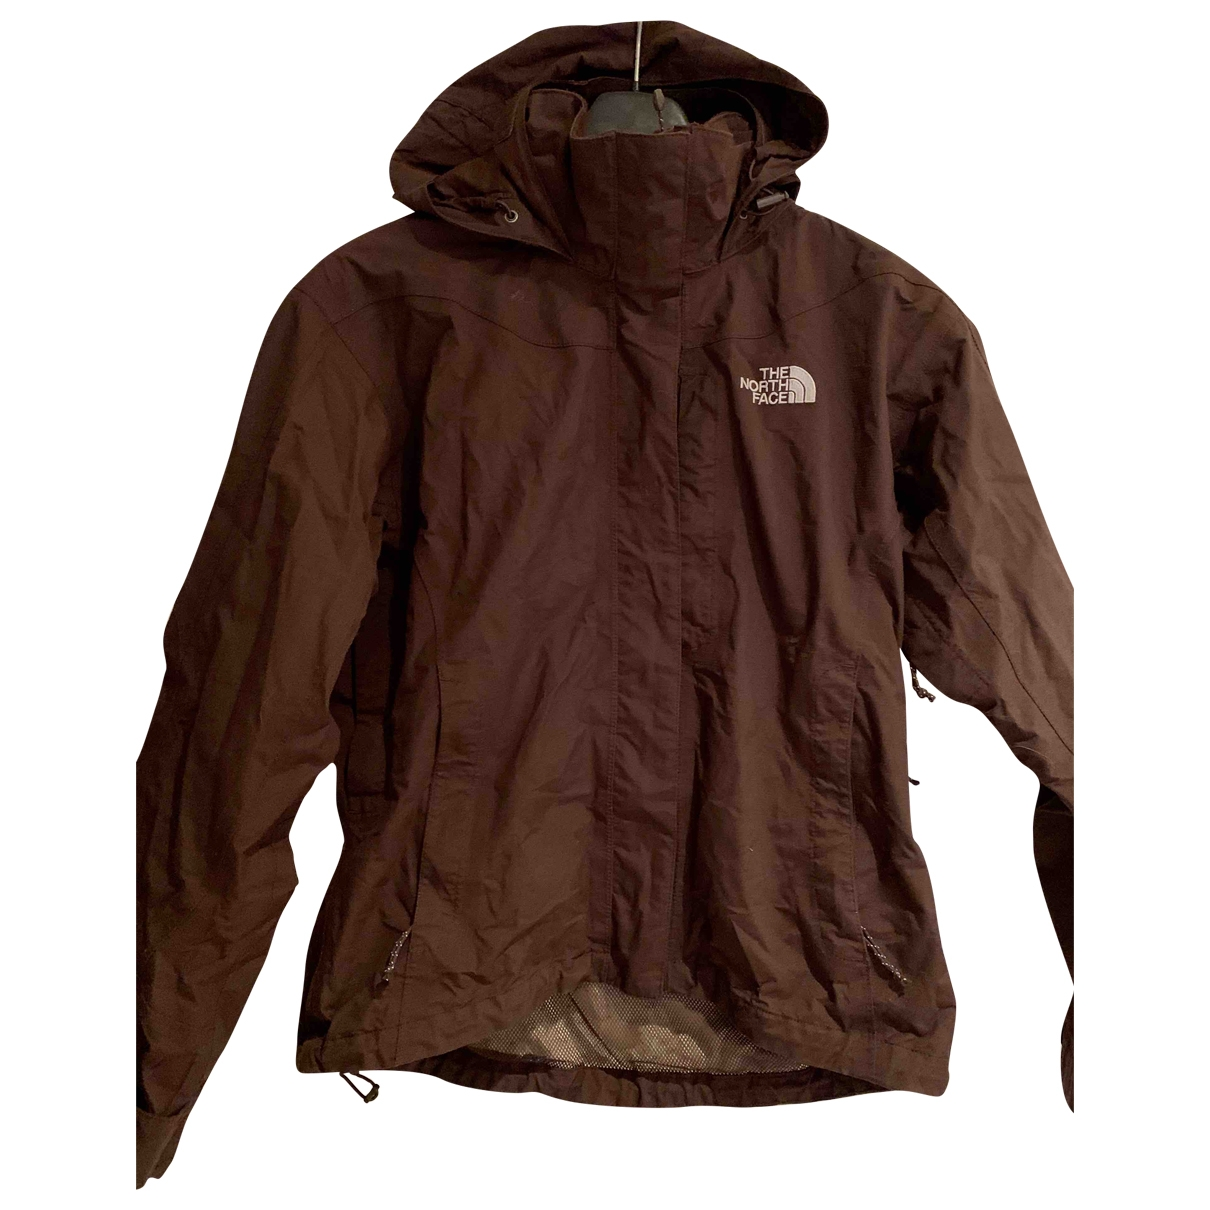 The North Face \N Brown coat for Women S International